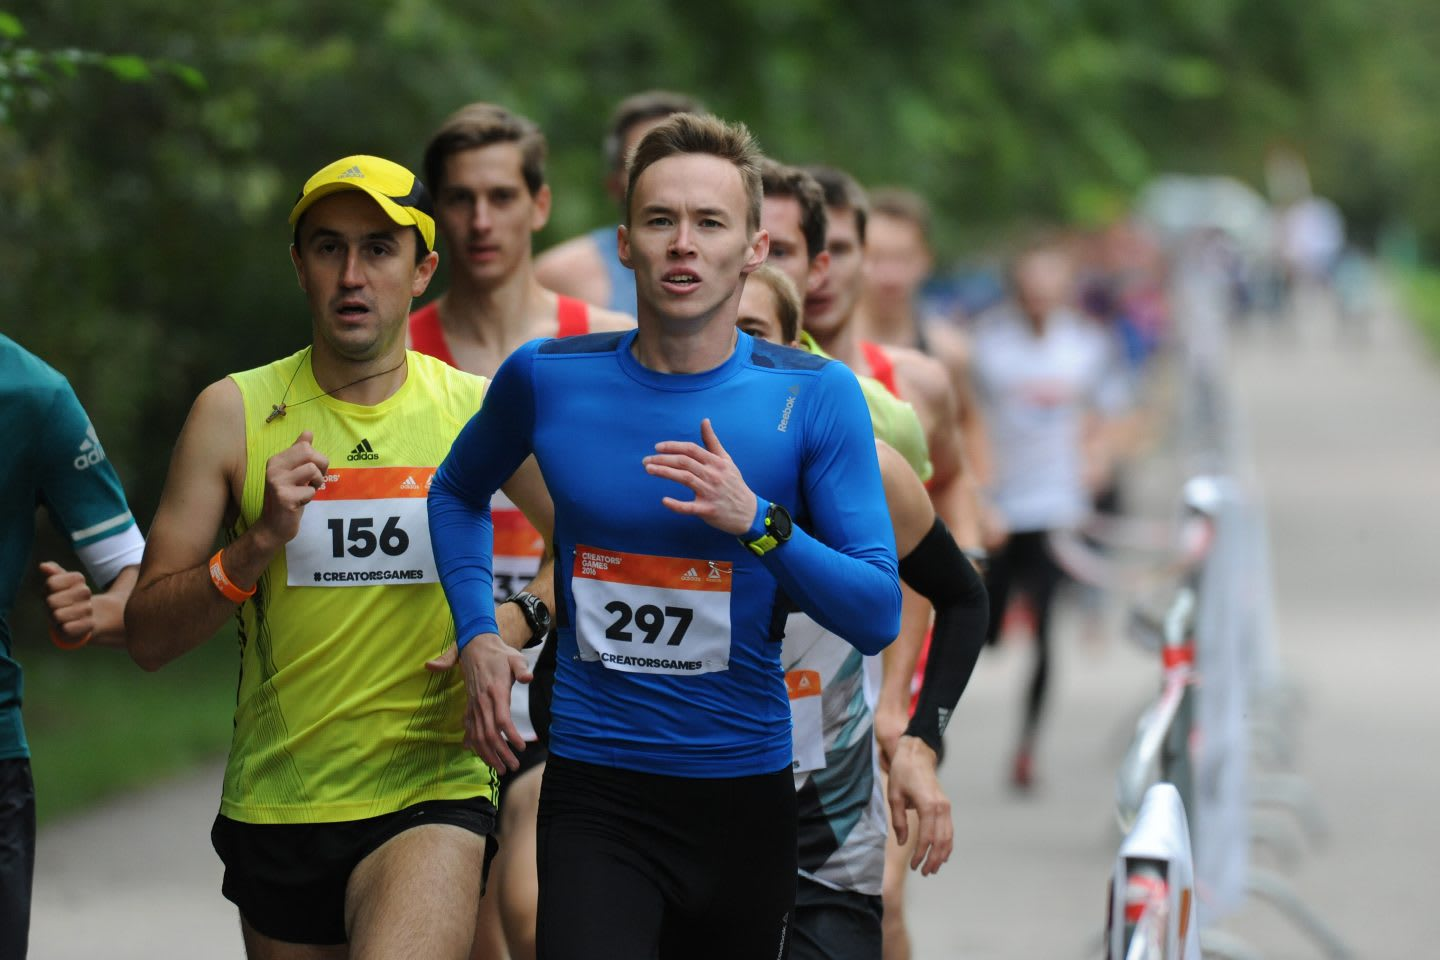 A man is pictured running in a race with other runners following him. Running; Race; Competiton; Motivation; Athlete